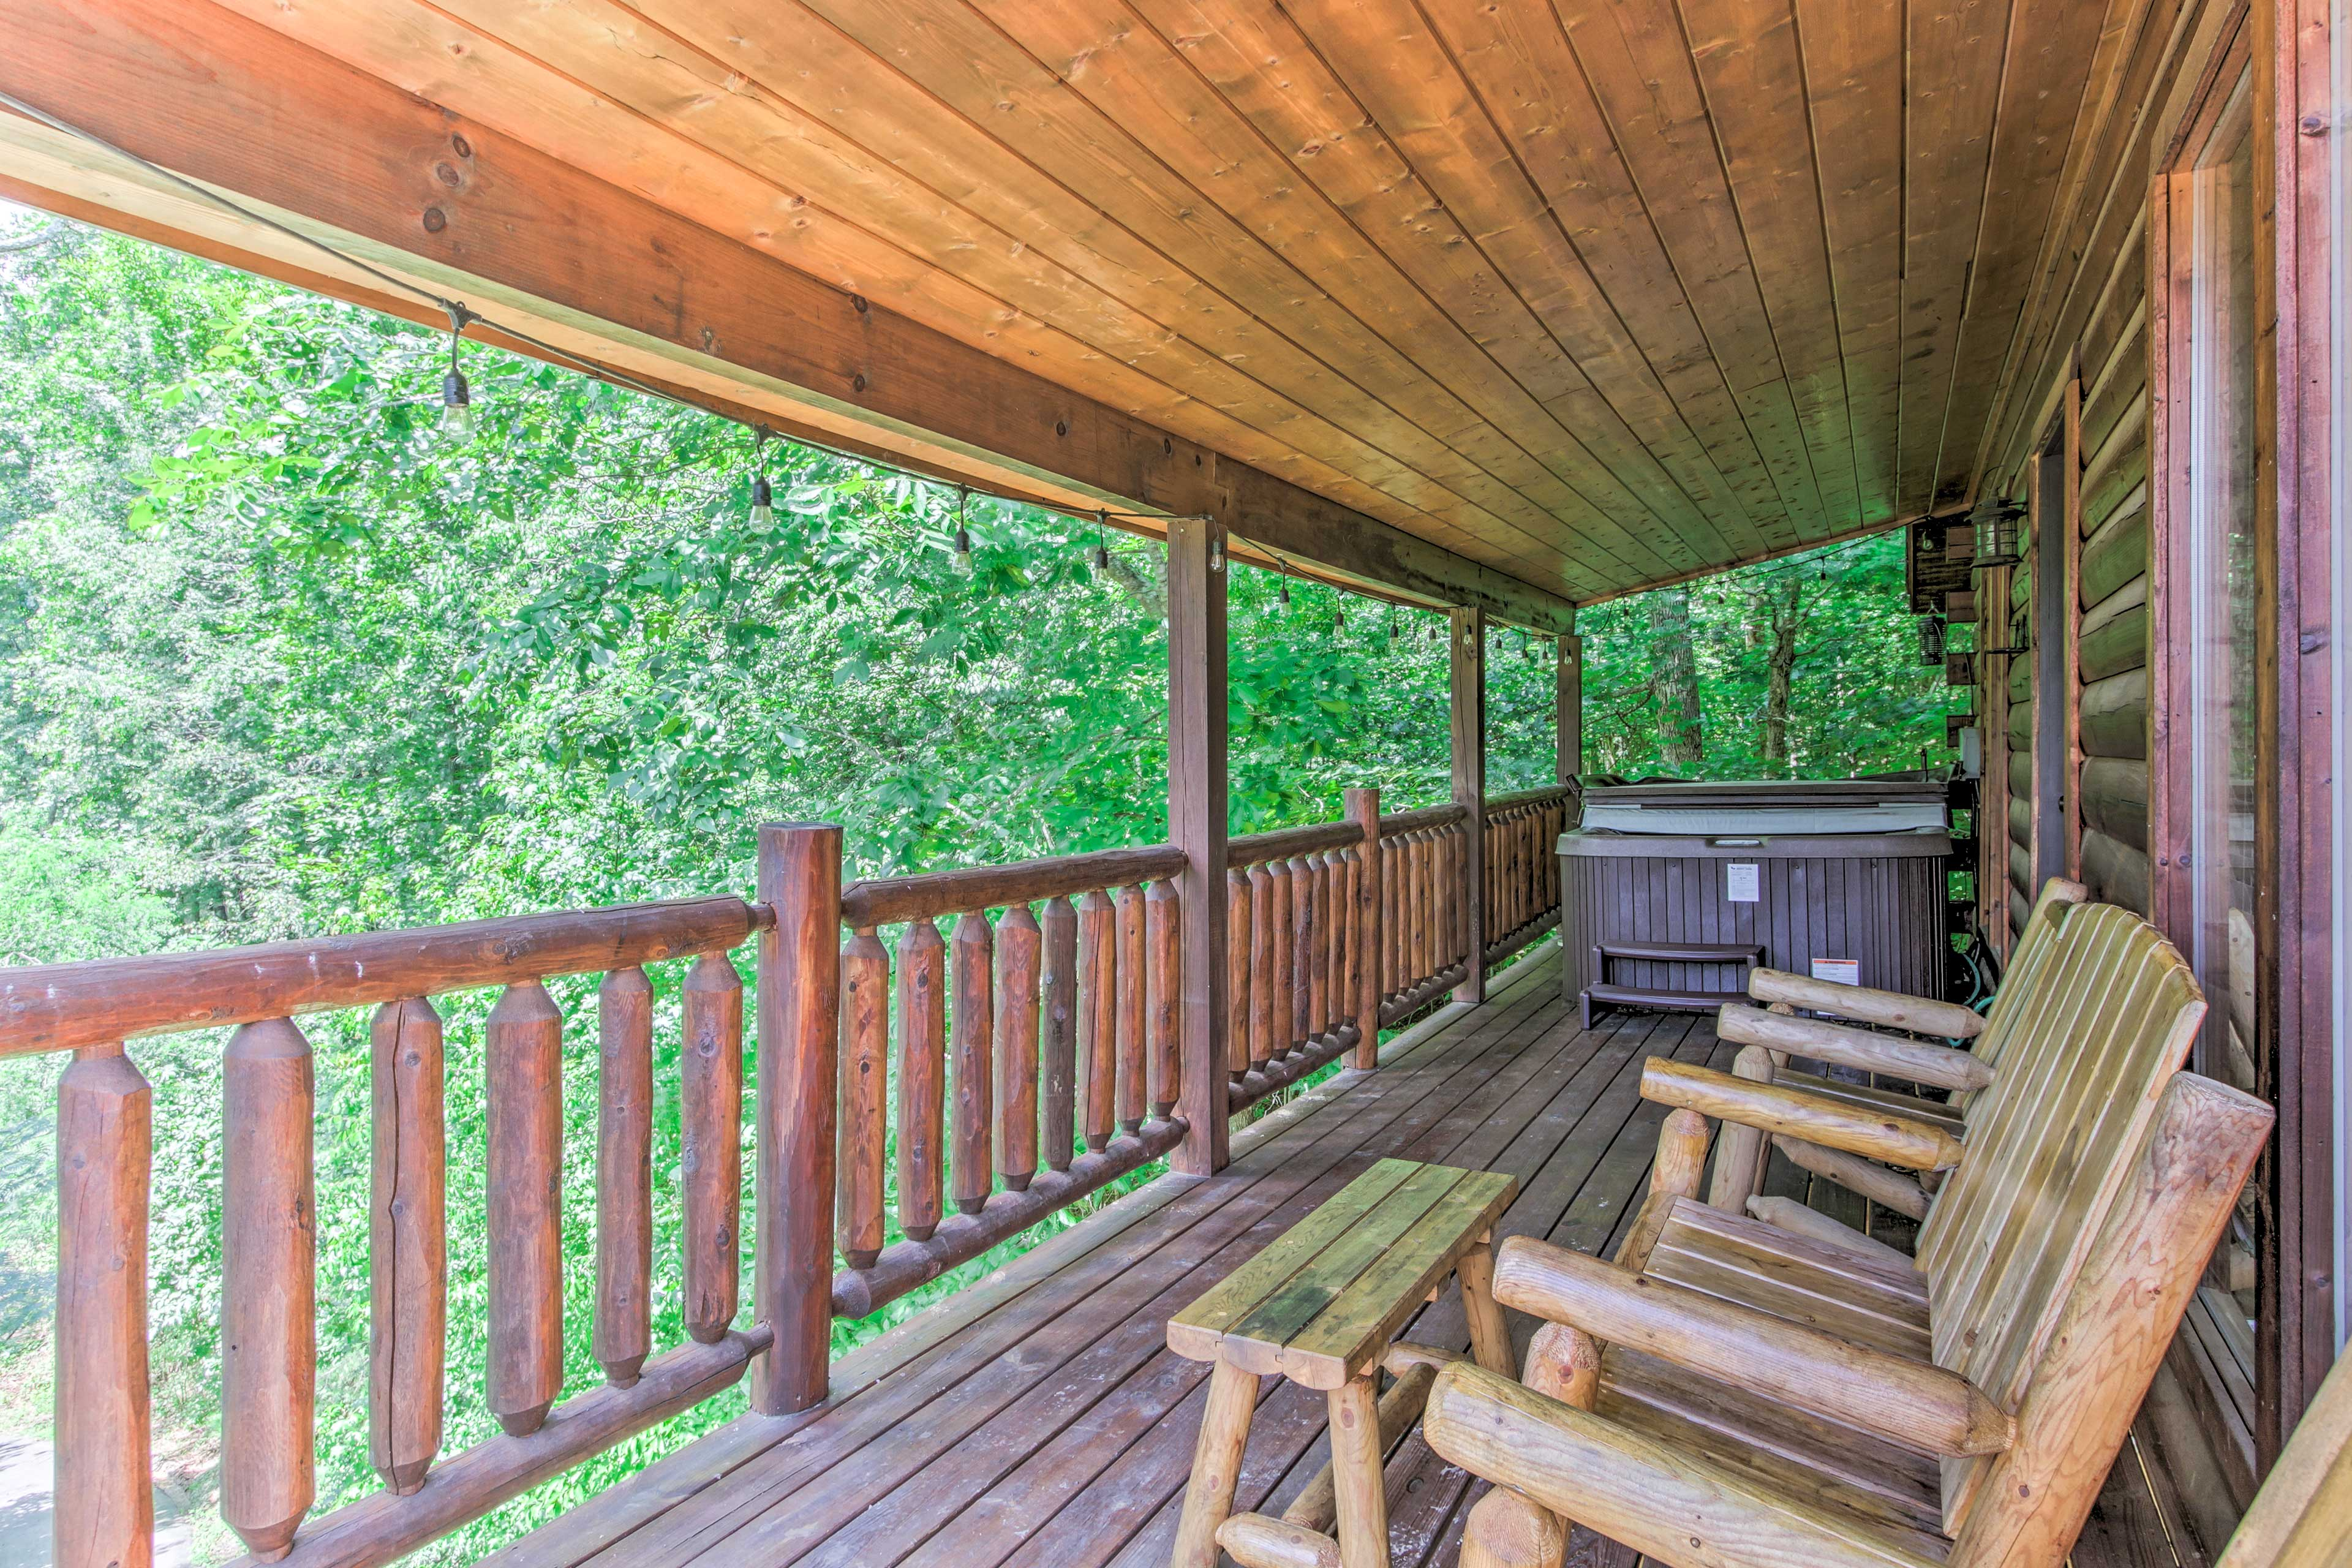 Head out to the deck to relax on the log chairs.